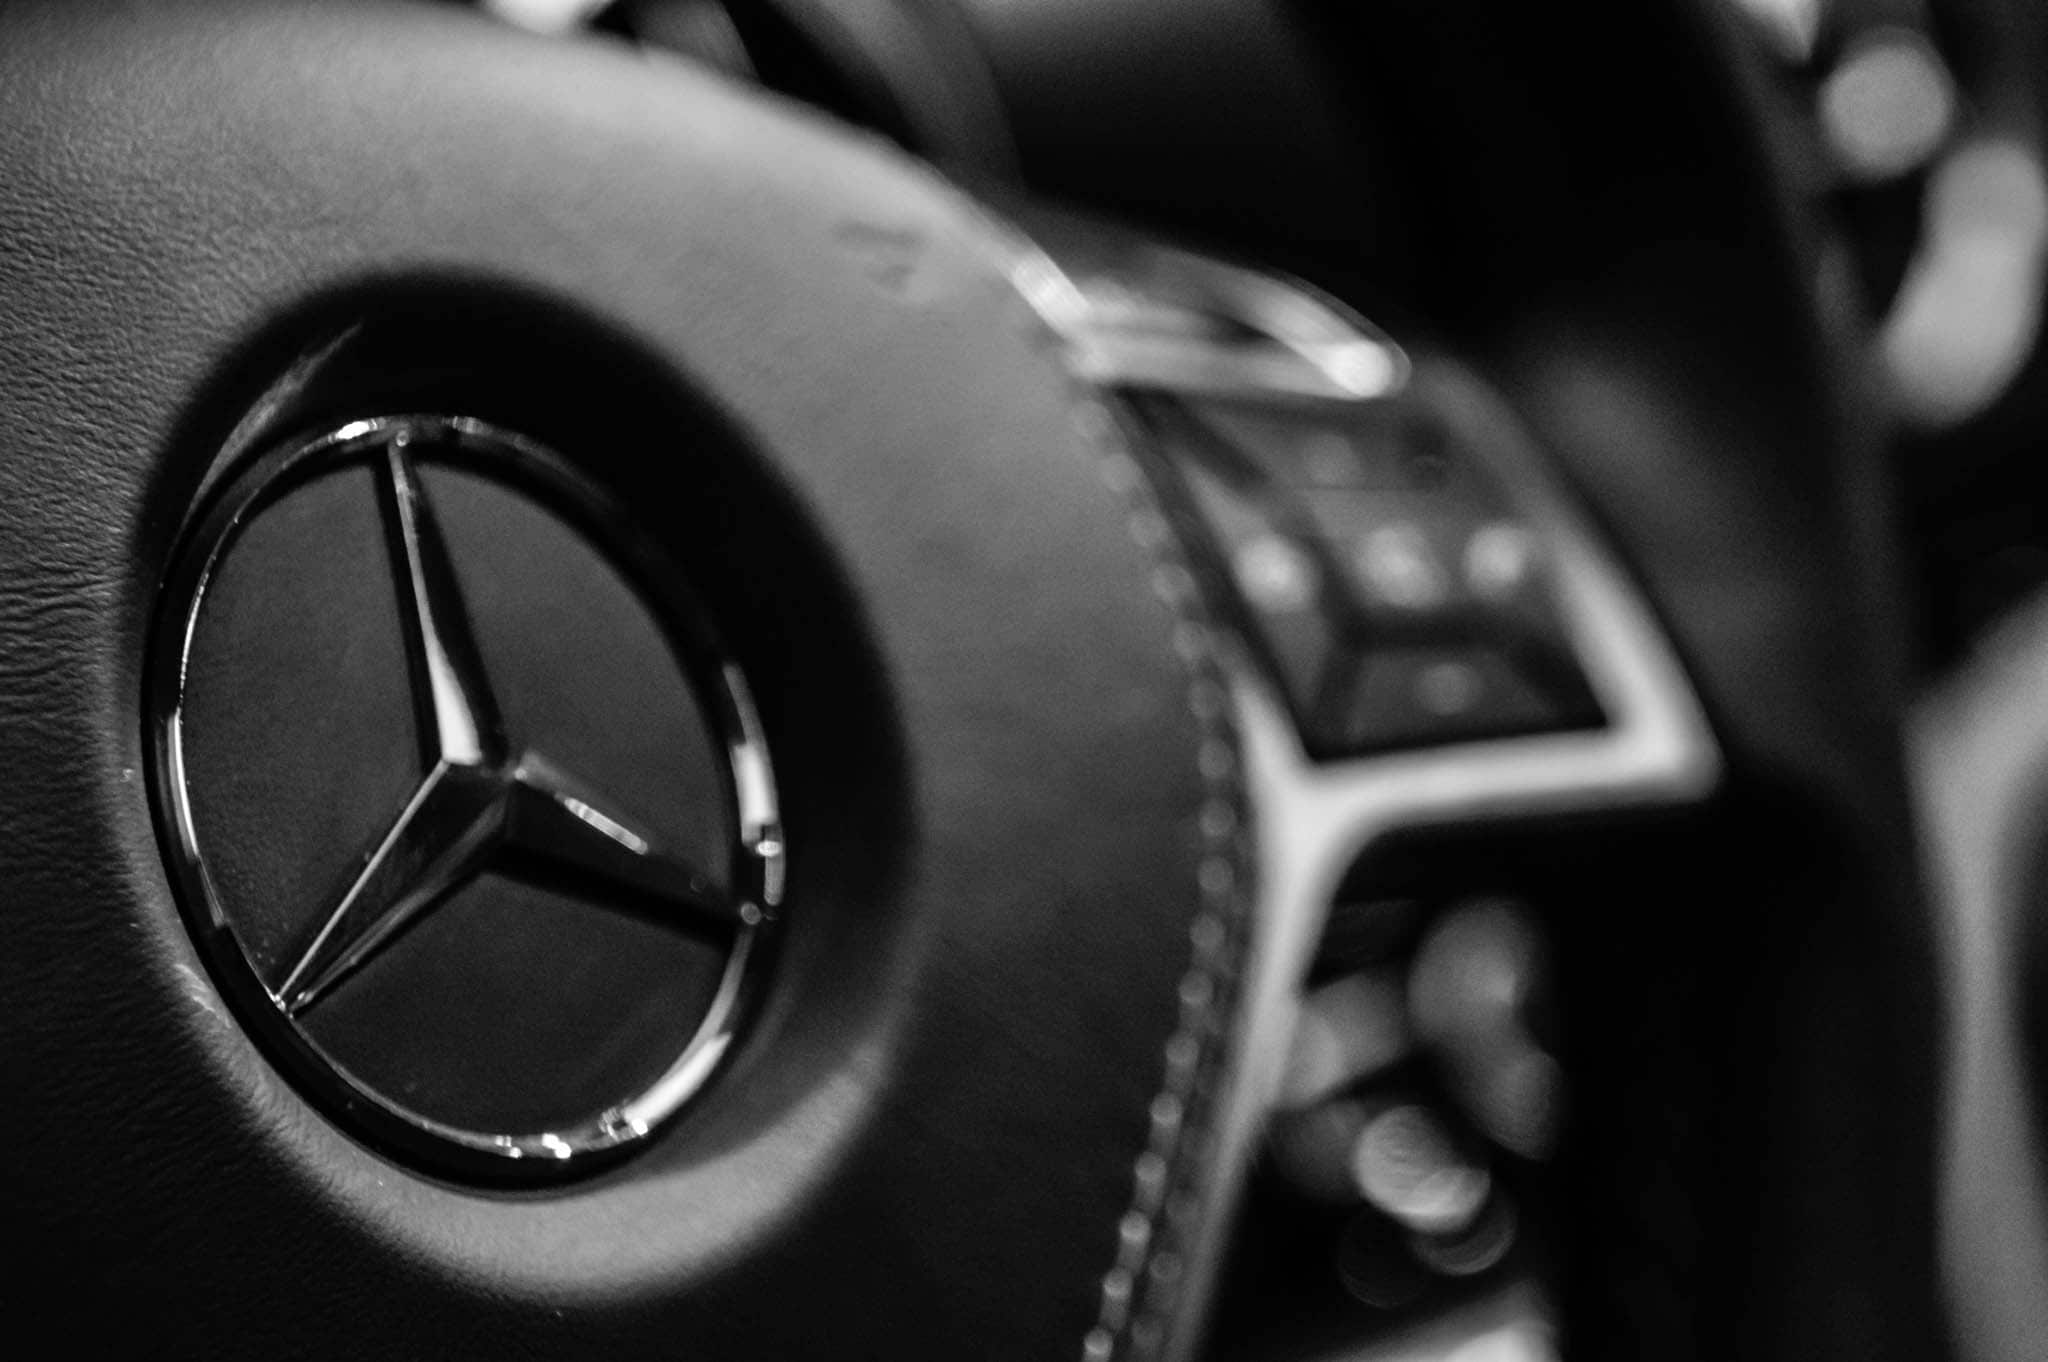 From The Invention Of The Crumple Zone To Countless Innovations In Occupant  Protection And Accident Avoidance, The Safety Firsts Of Mercedes Benz Often  Set ...